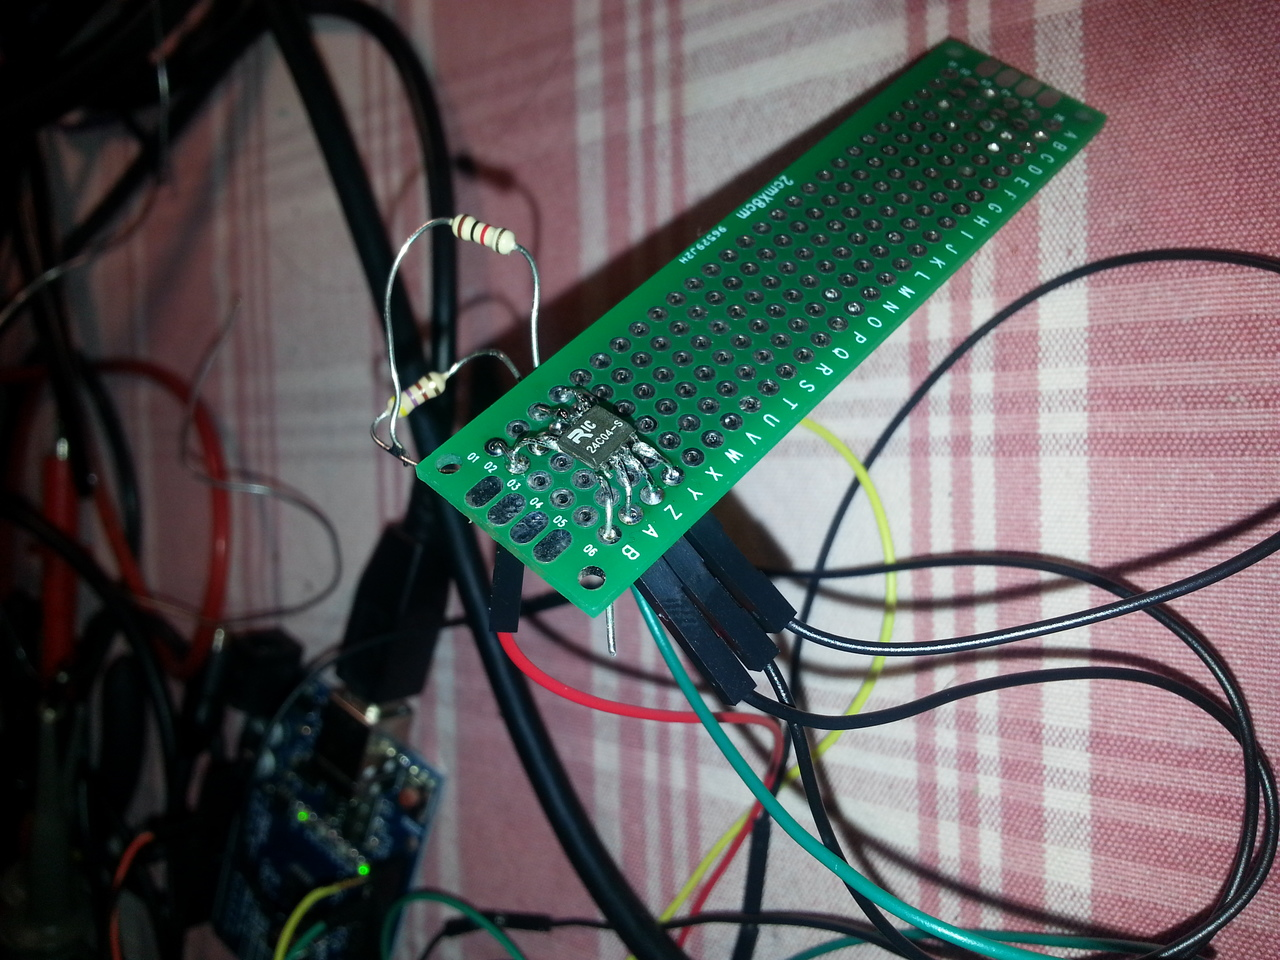 the breadboard-based setup with a FM24C04 to be dumped.